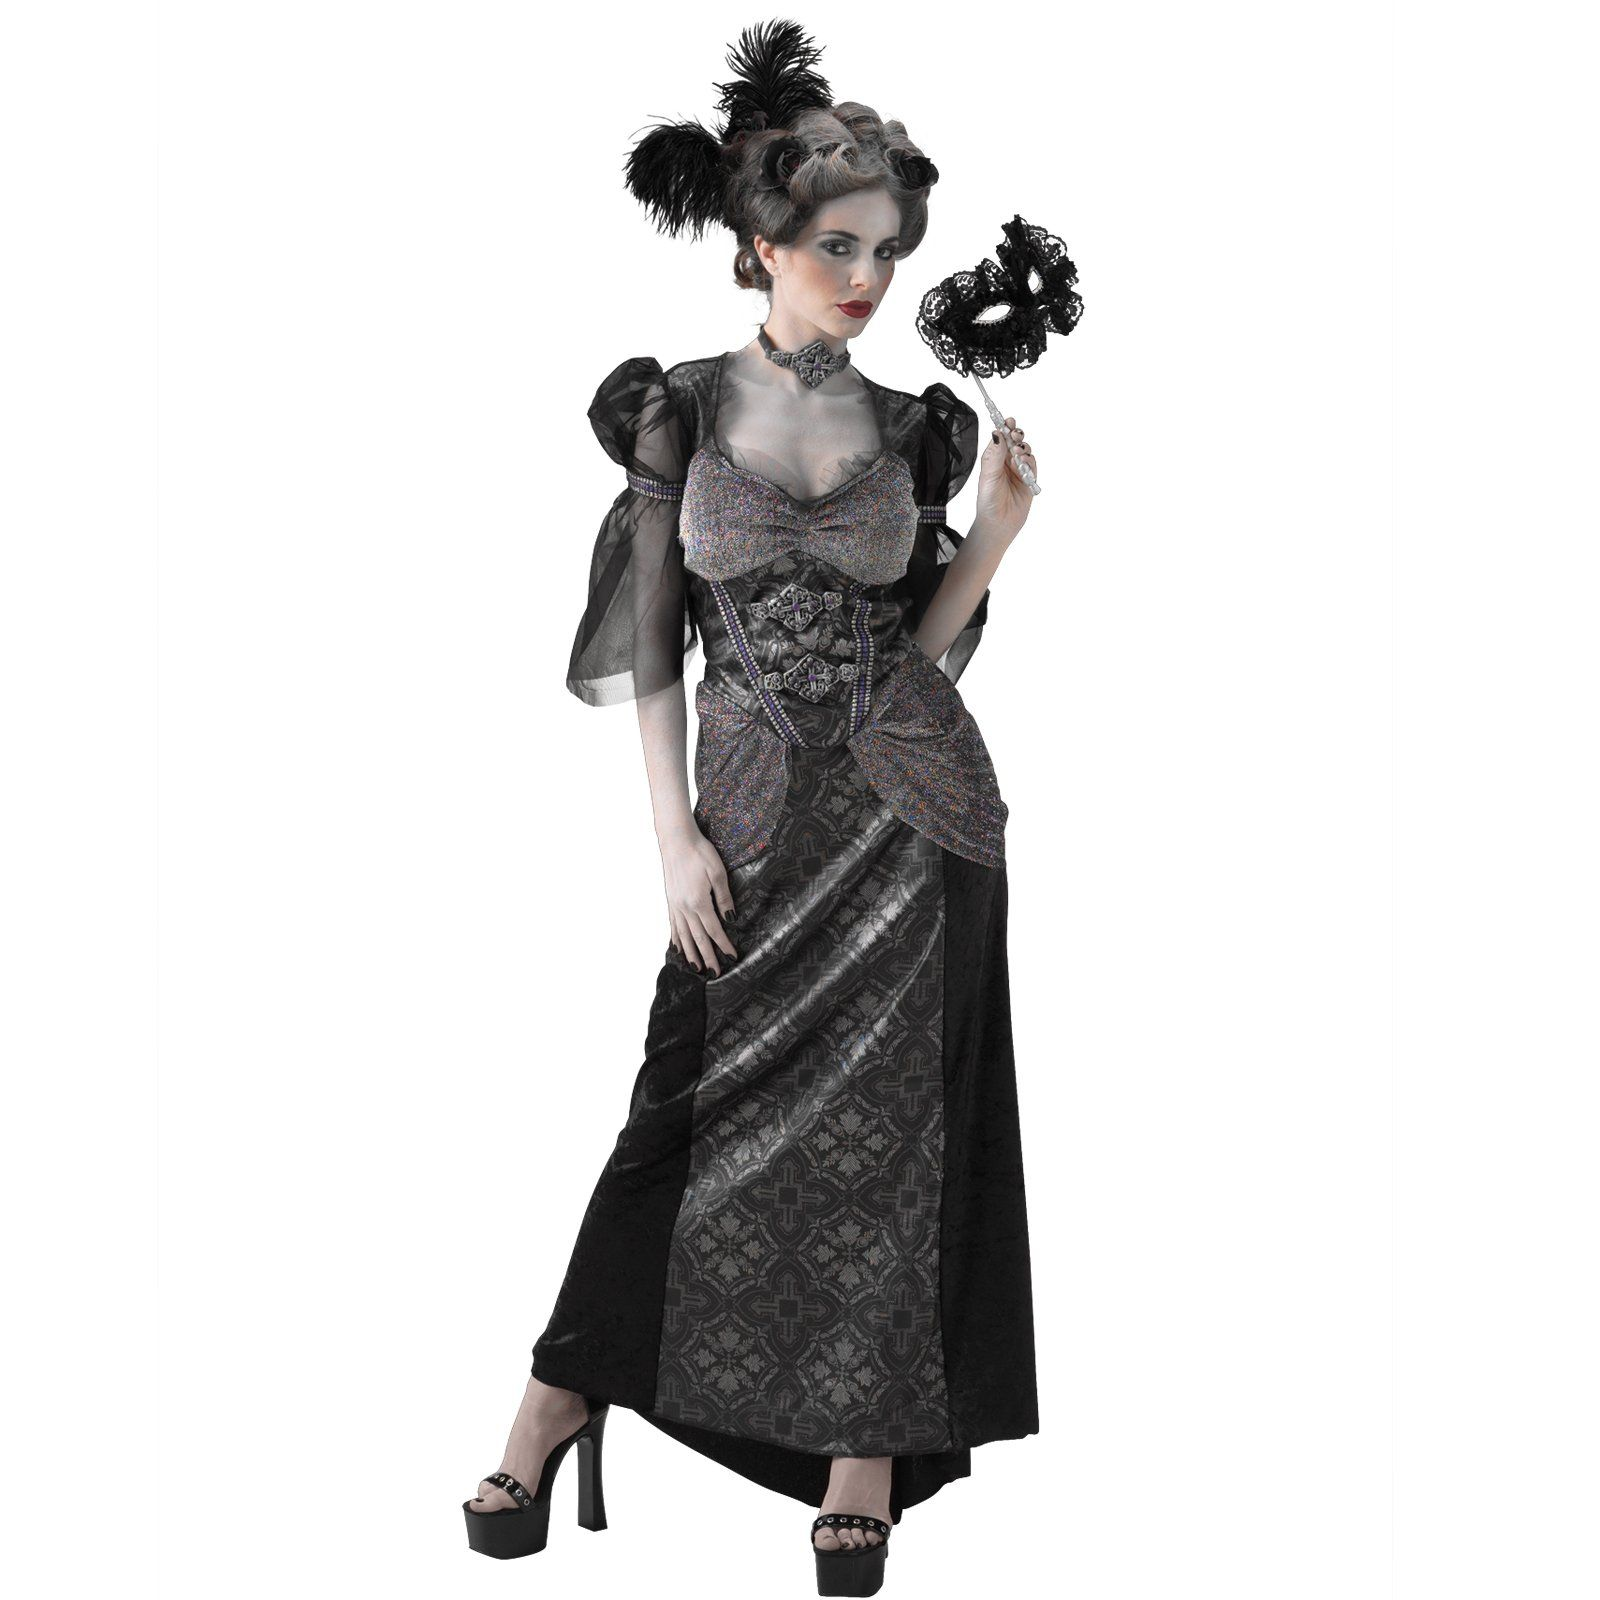 Astounding 17 Best Images About Le Masquerade Ball Gowns On Pinterest Short Hairstyles For Black Women Fulllsitofus